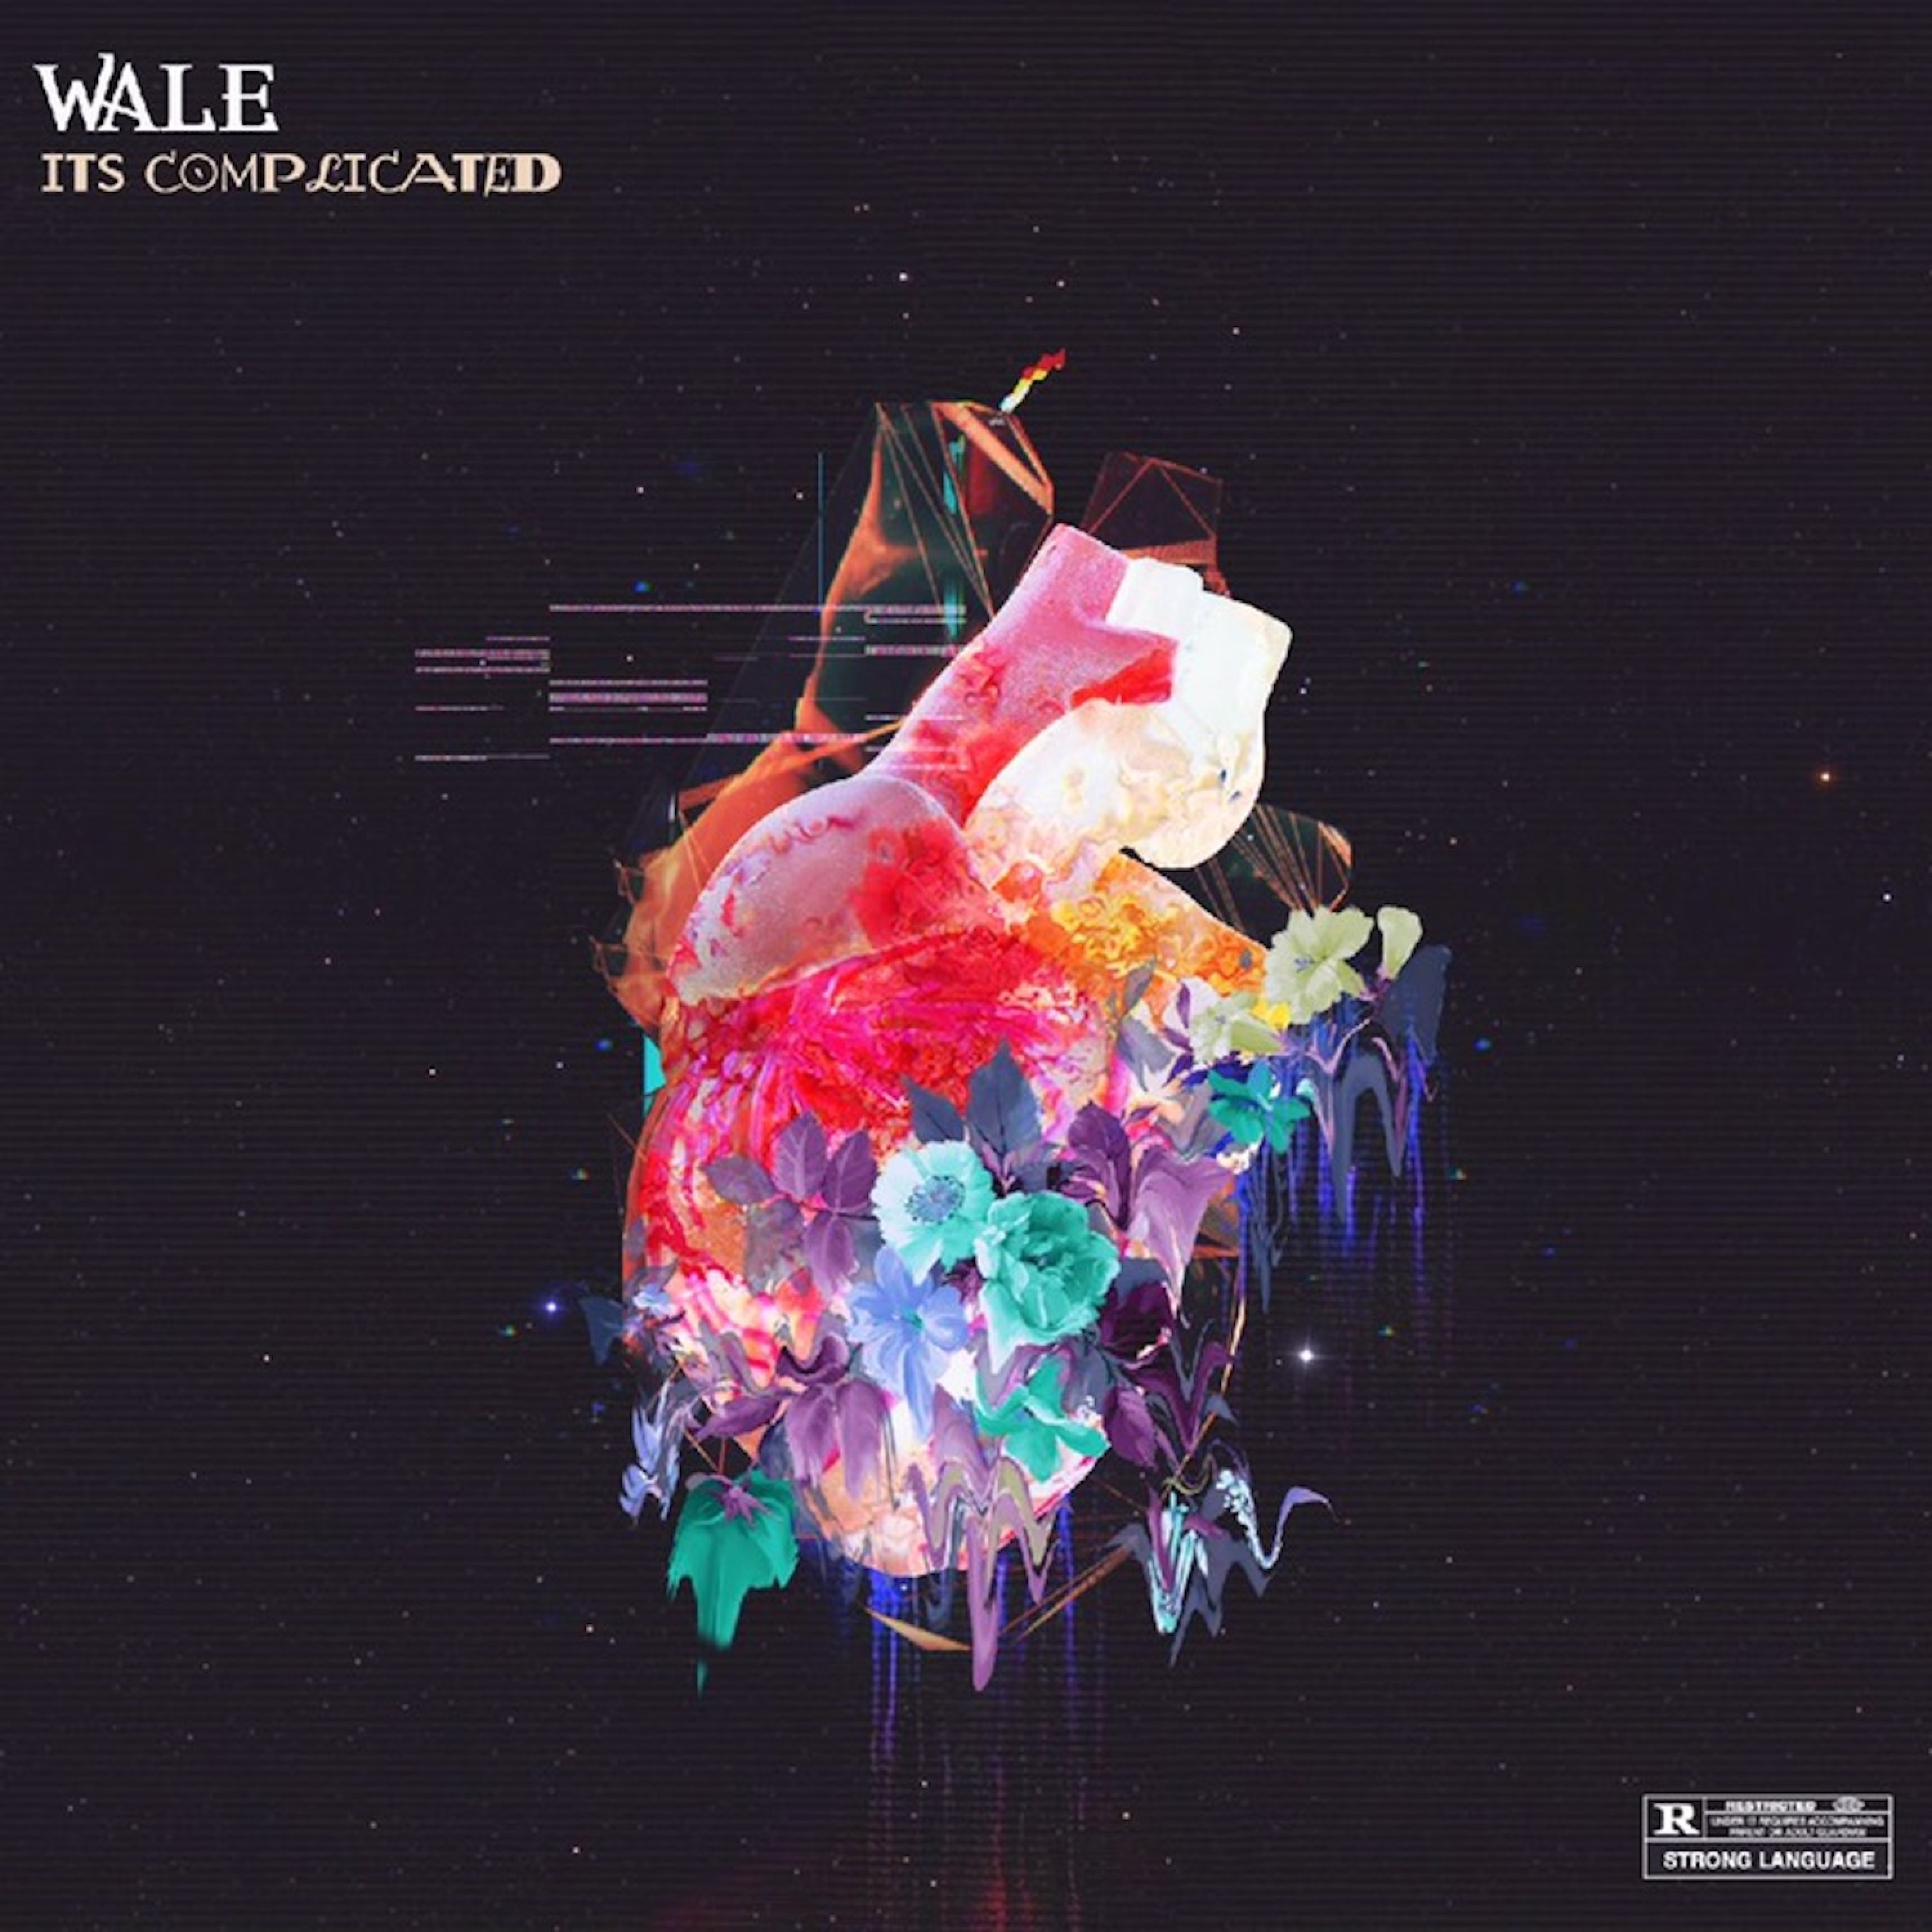 Wale Radio Listen To Free Music Get The Latest Info Iheartradio